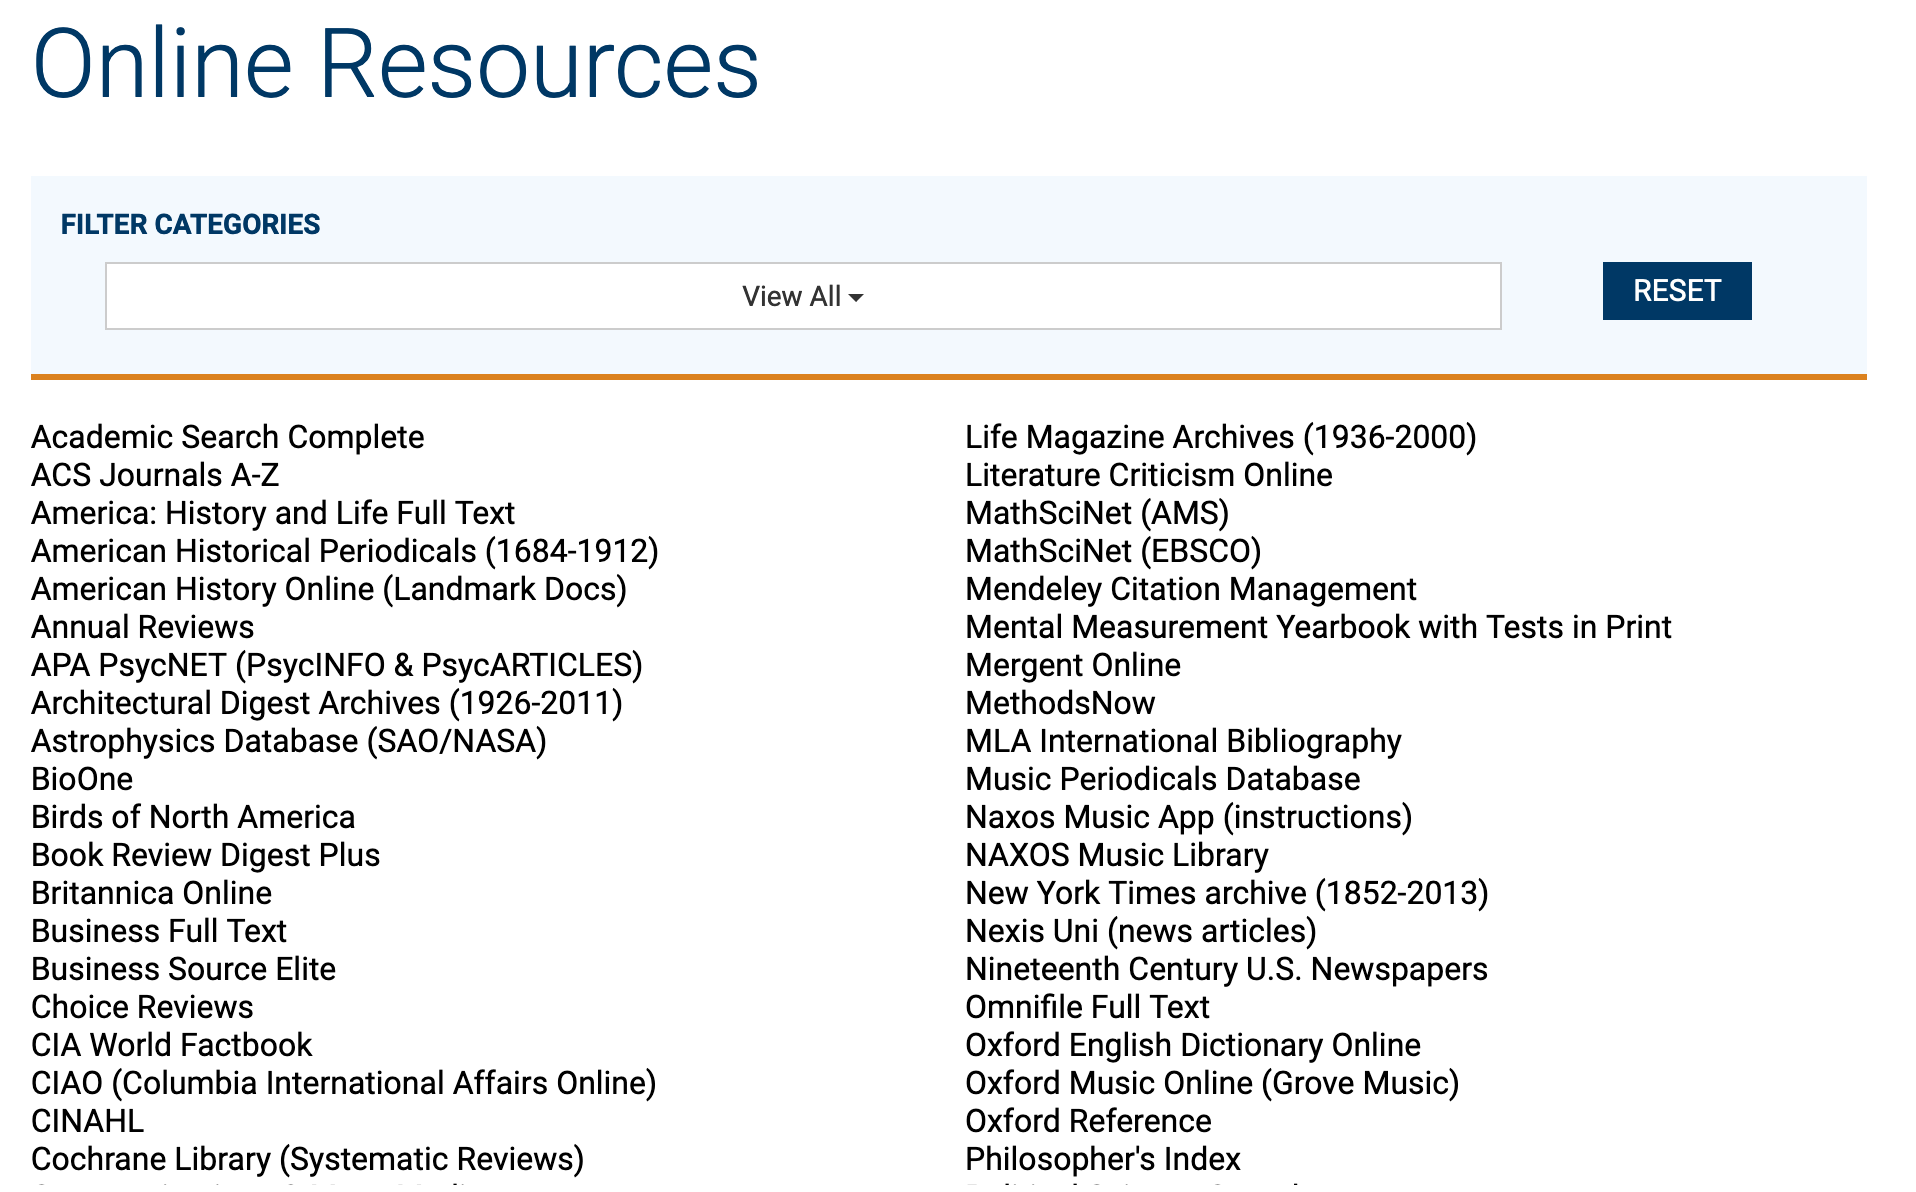 List of online resources from westminster.edu/library